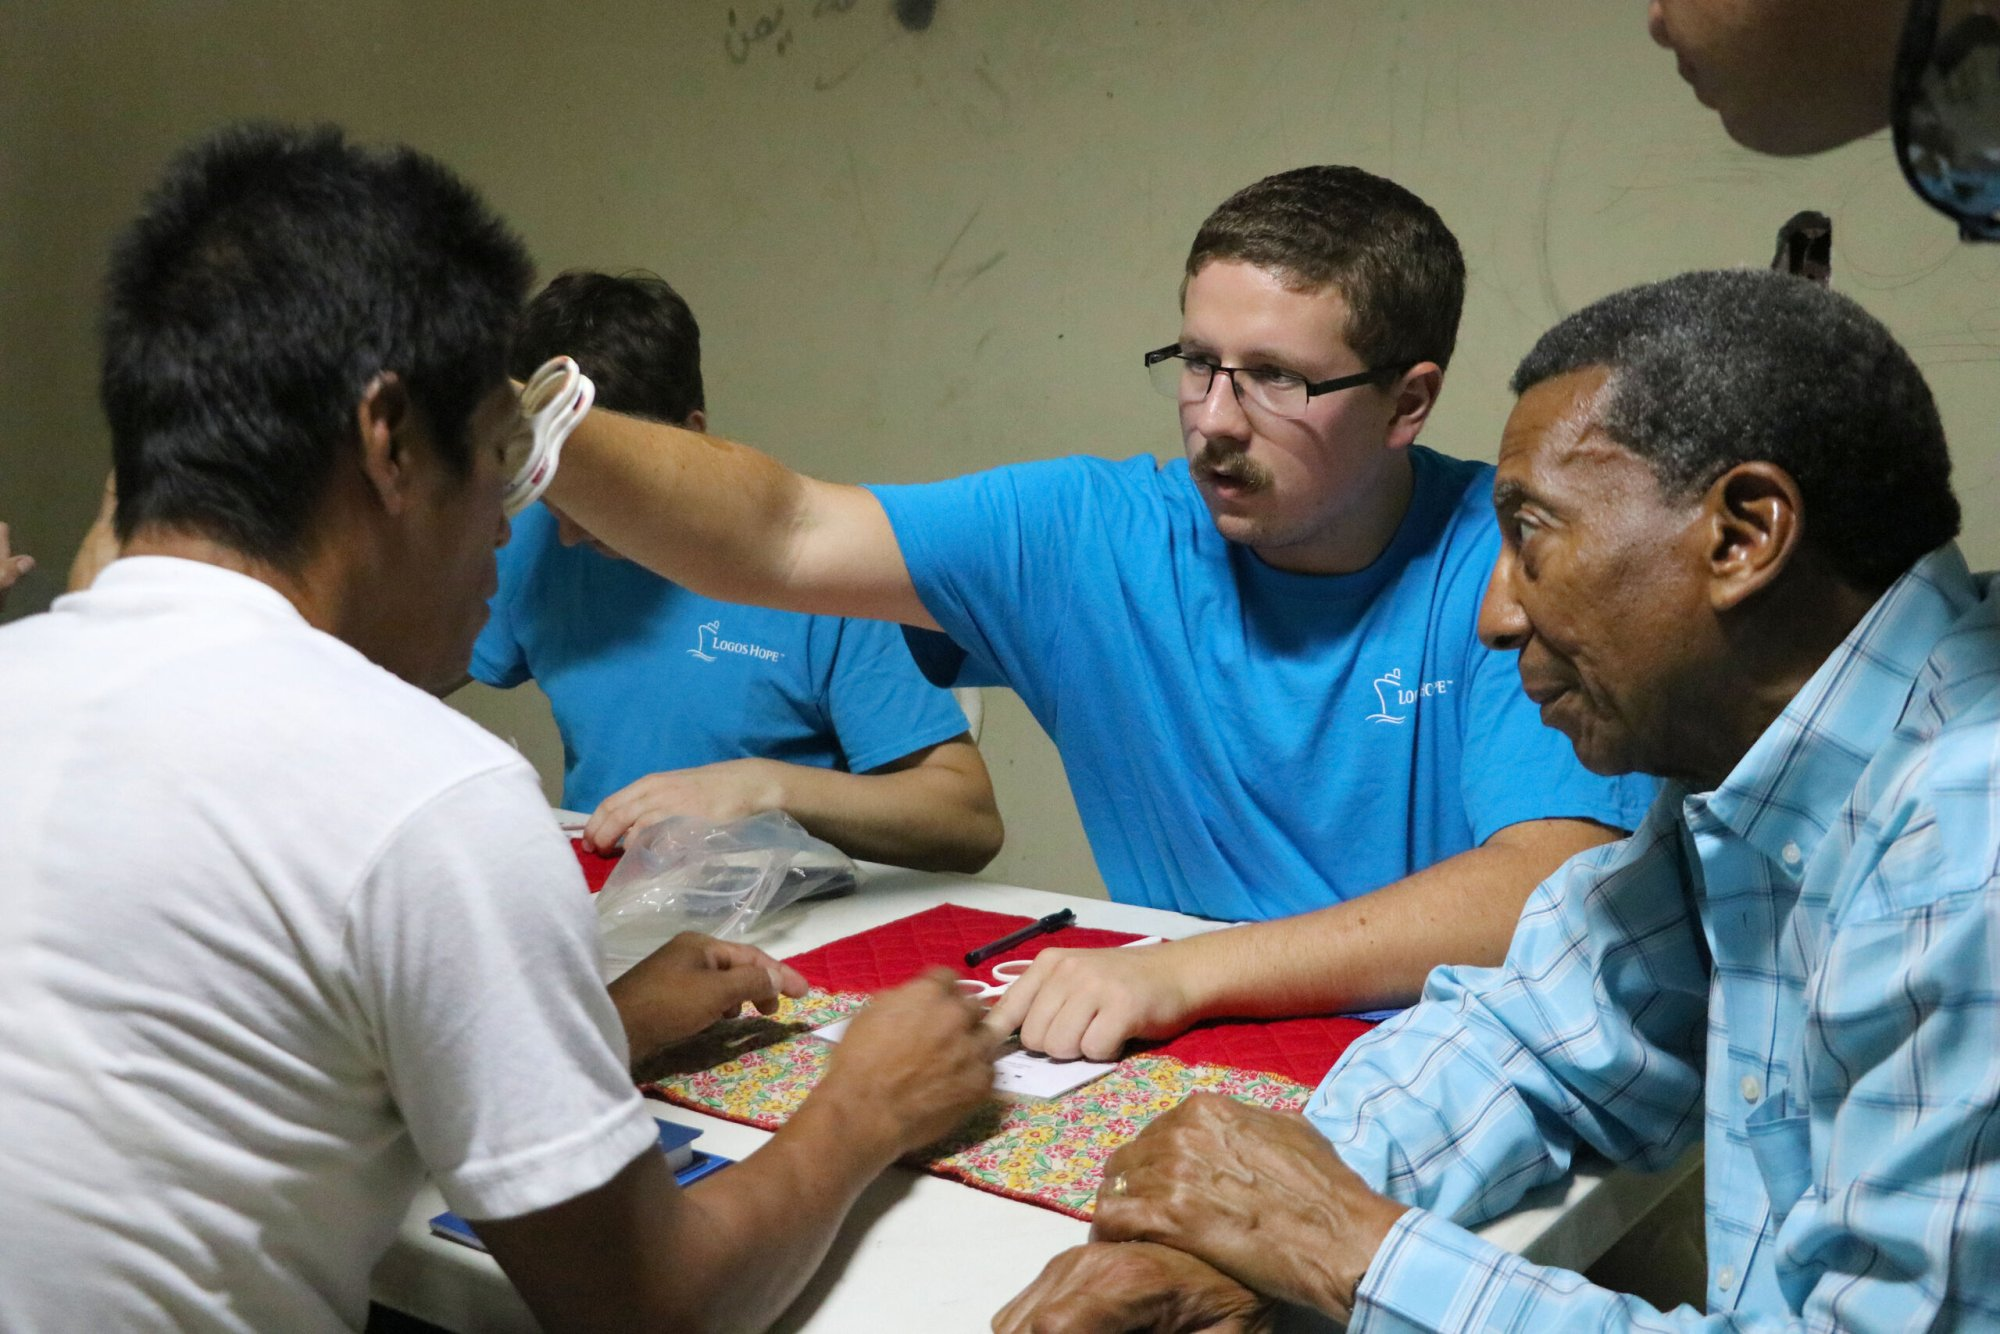 Panama: Simon Hutegger (Austria) gives sight tests in a shelter for male migrants. More Info